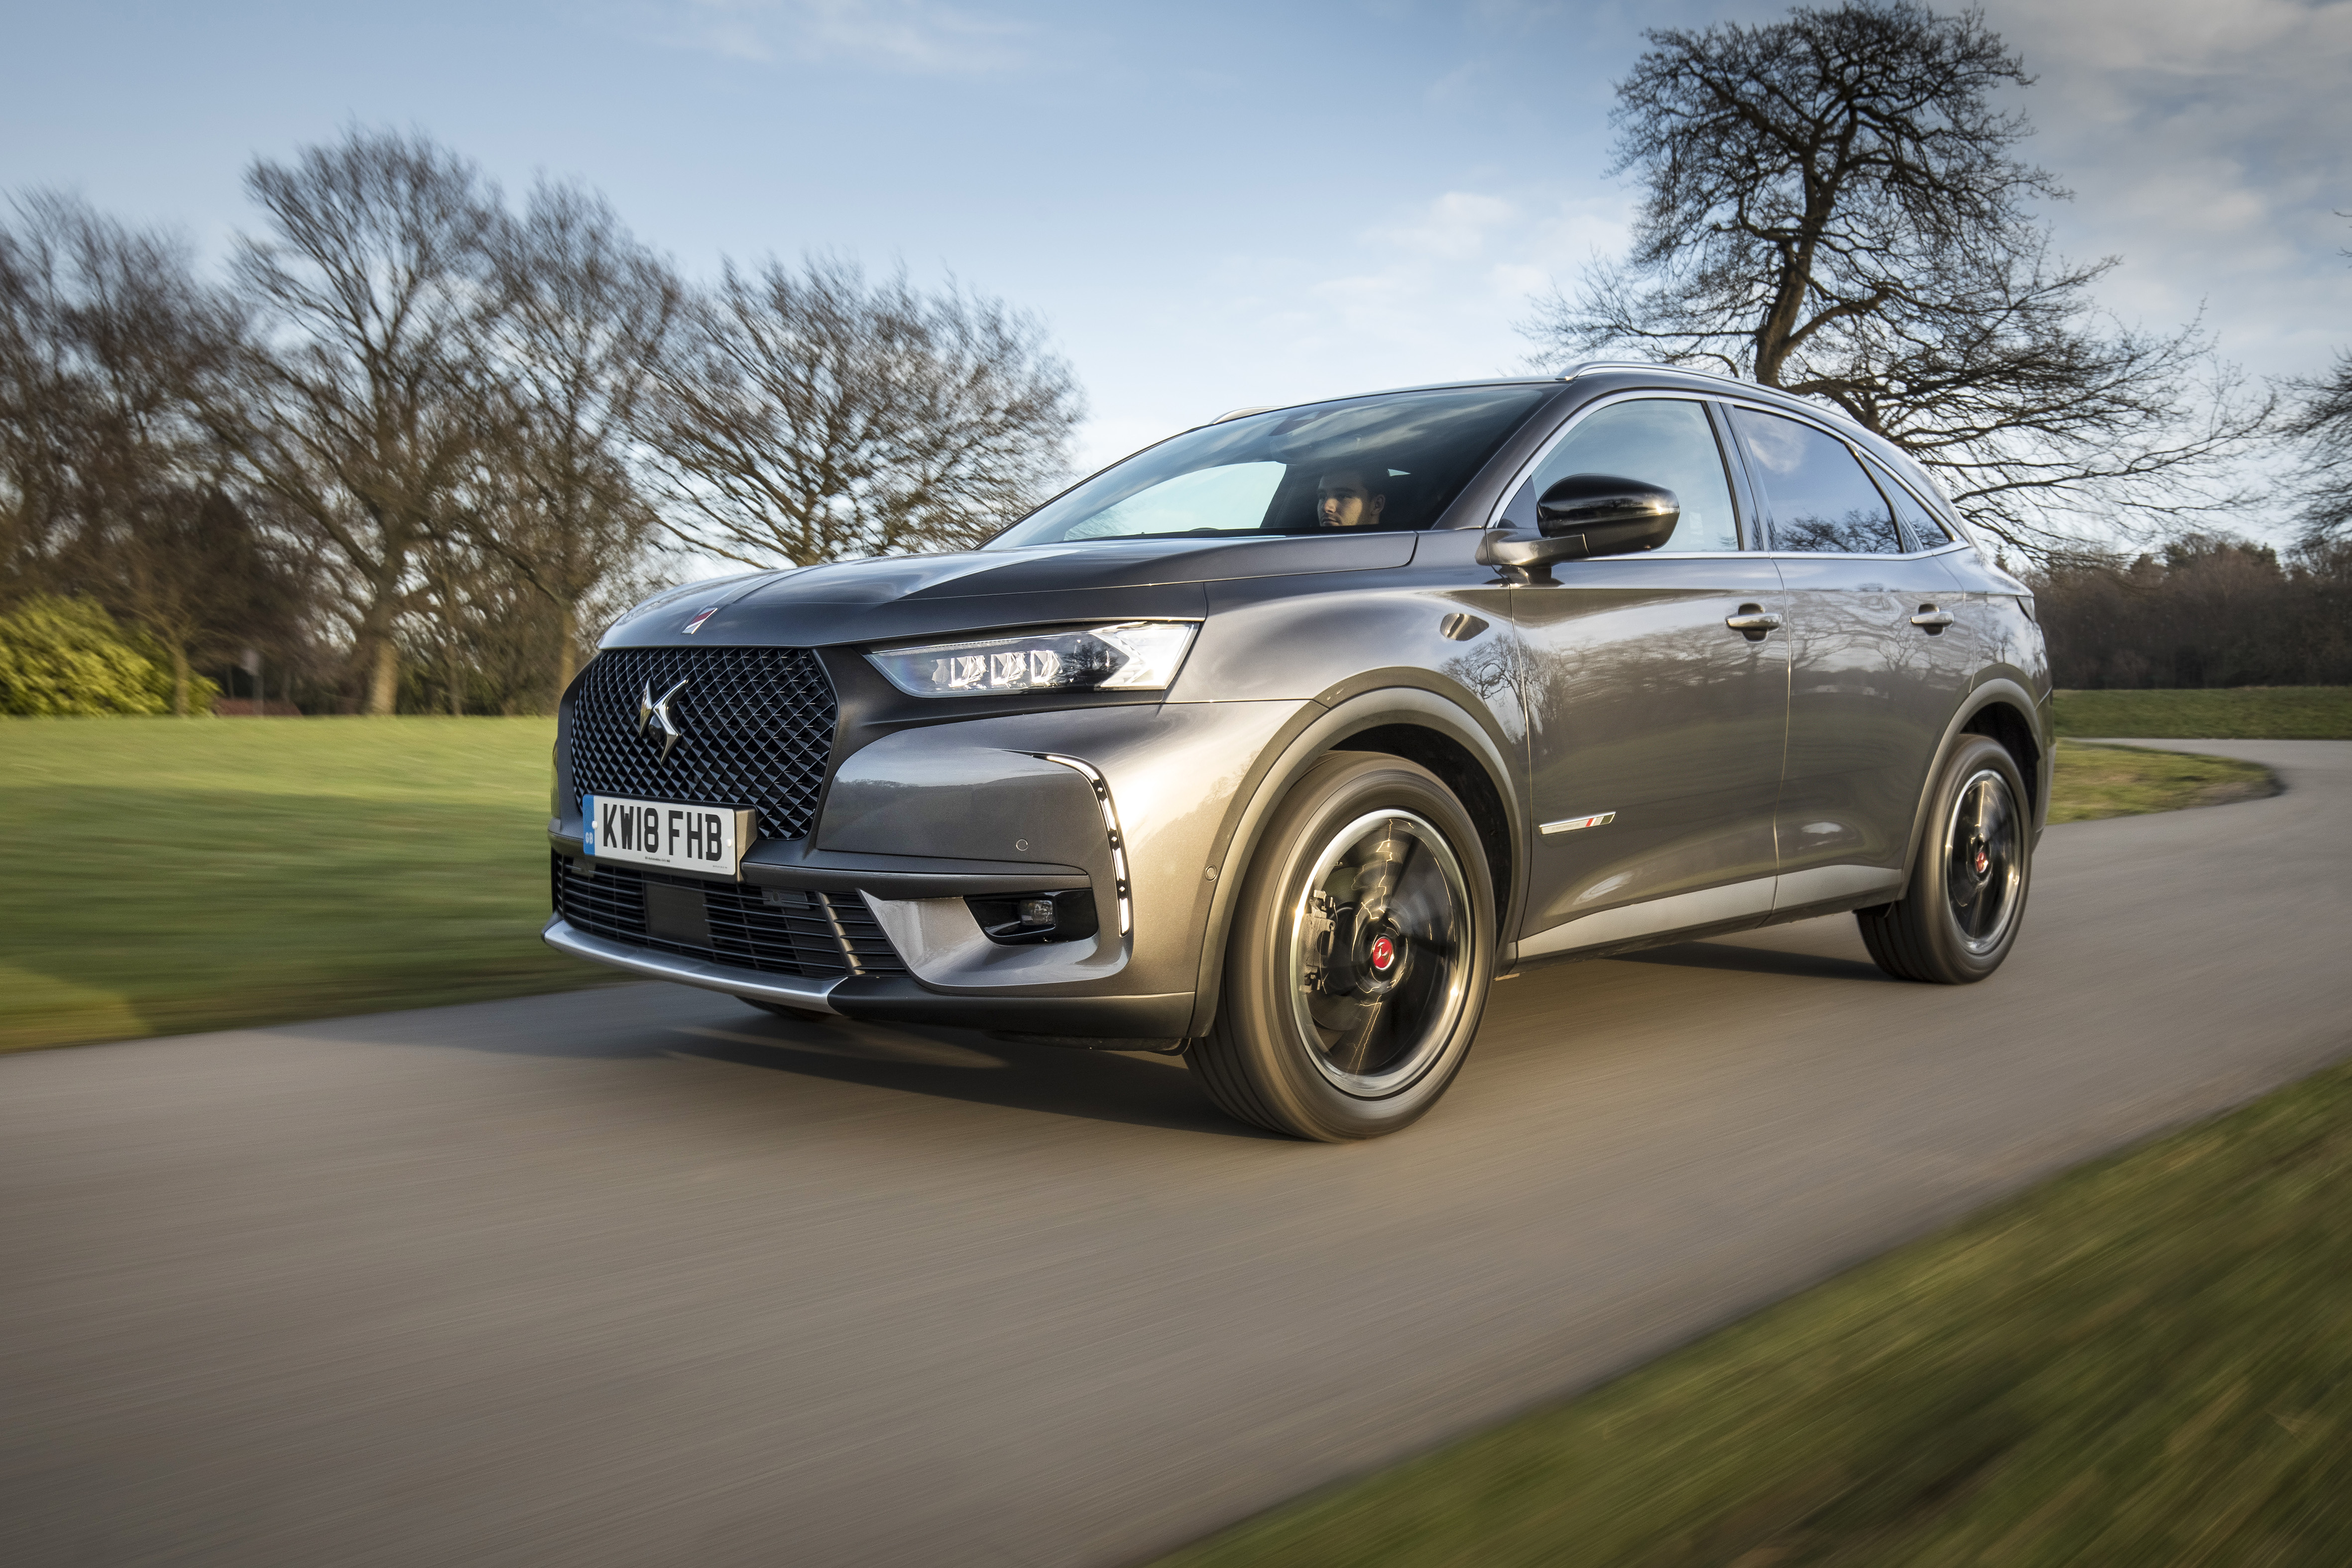 ds 7 crossback - performance line (h)